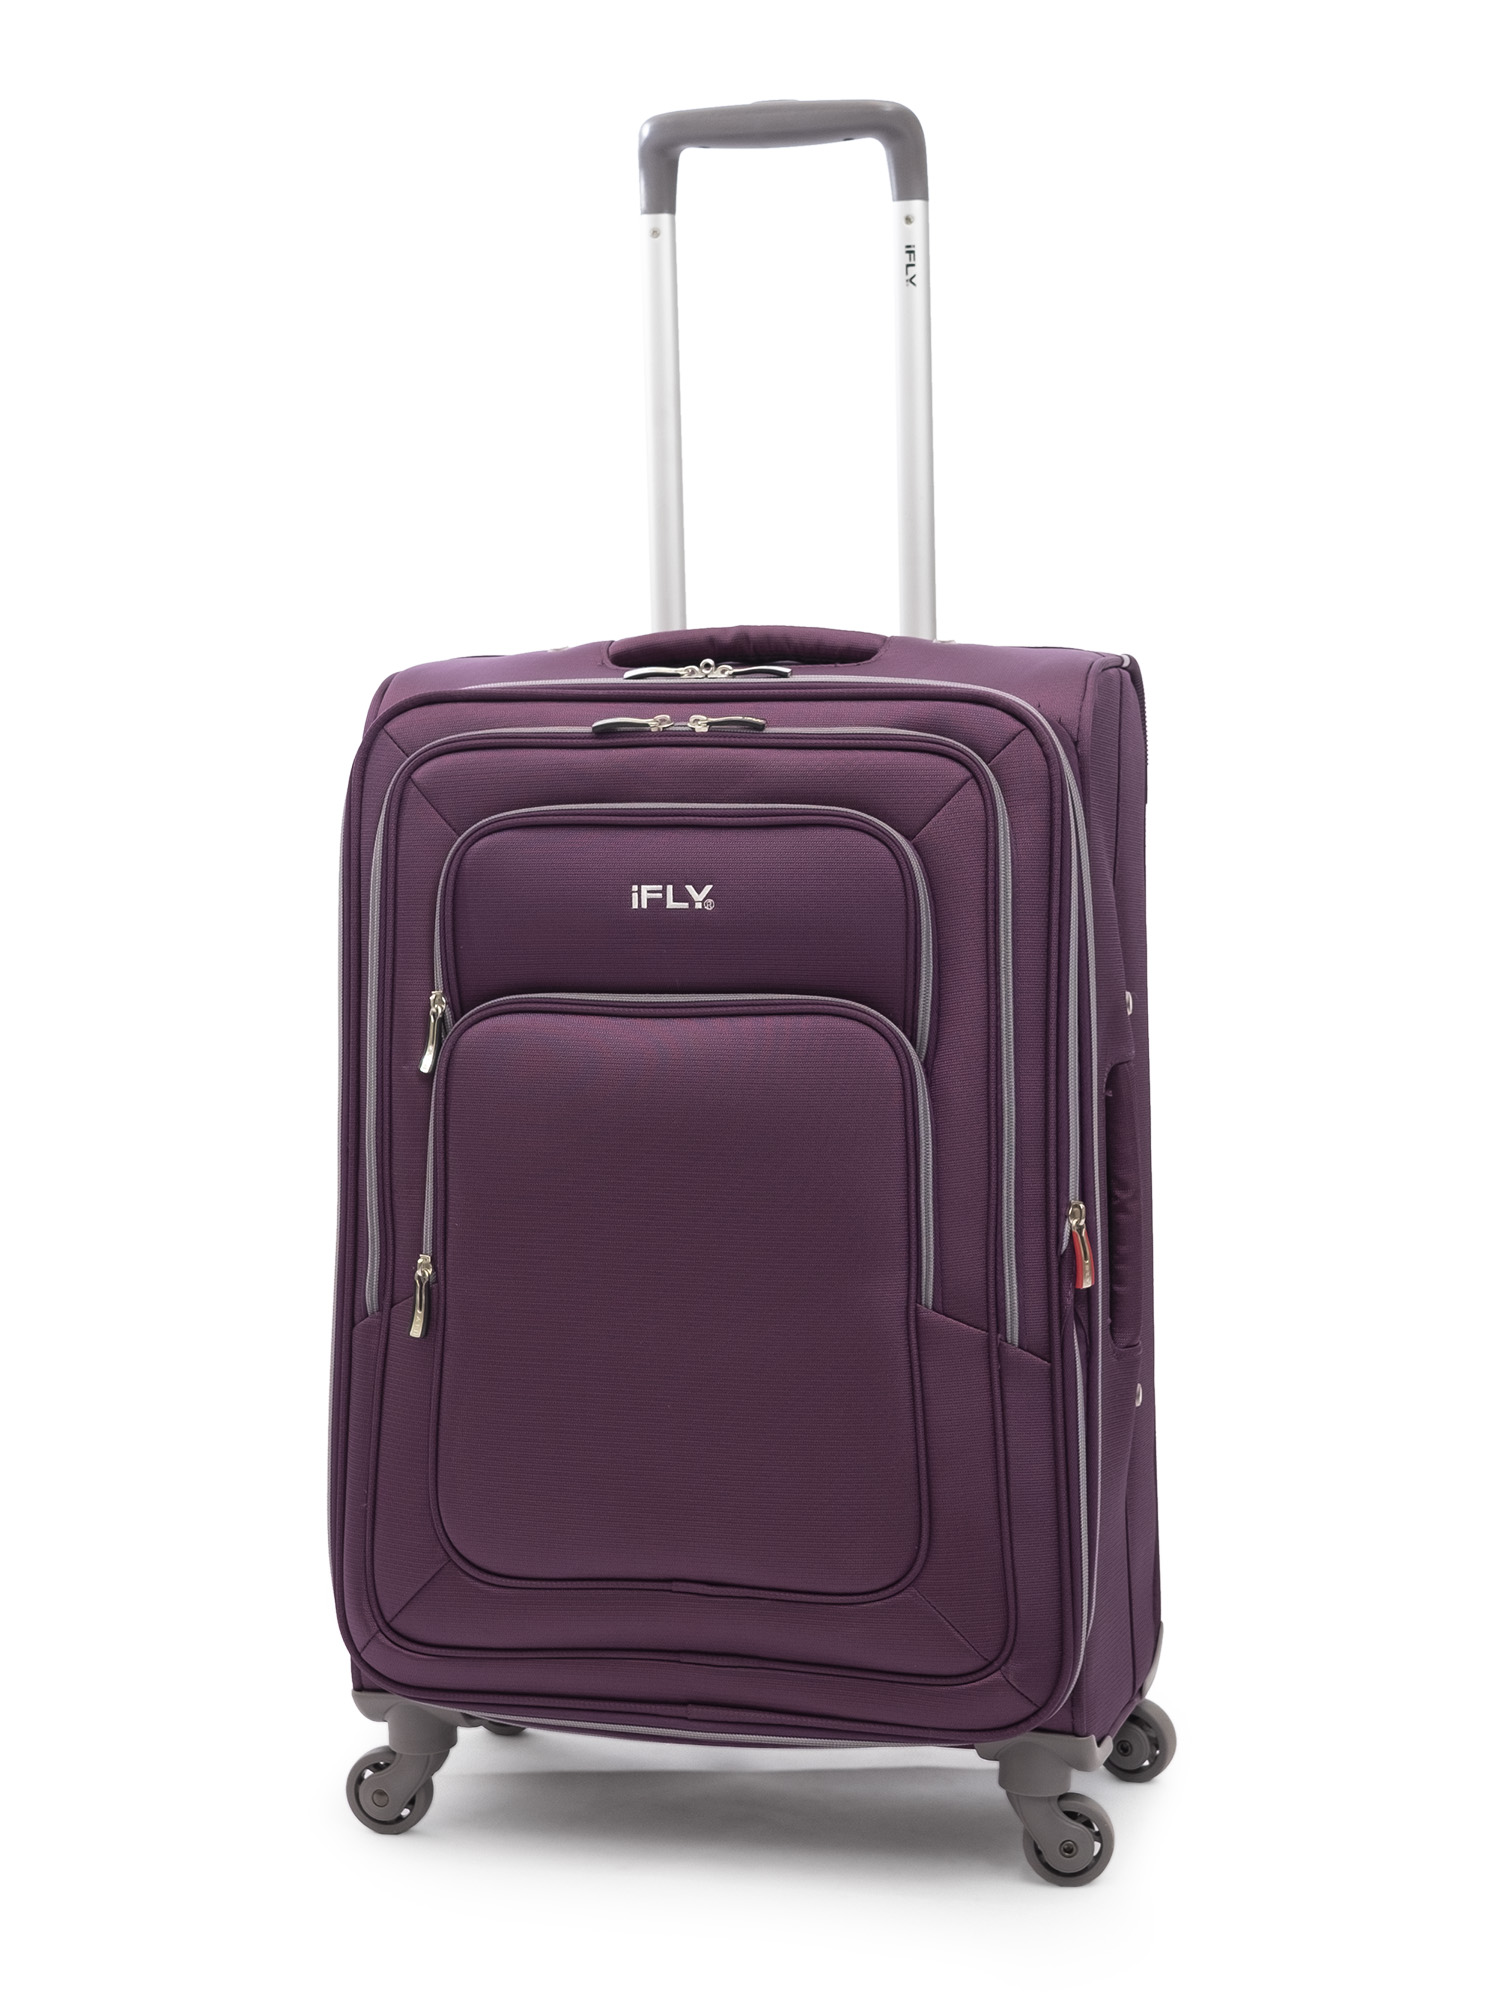 "iFLY Soft Sided Luggage Jewel 24"", Purple"